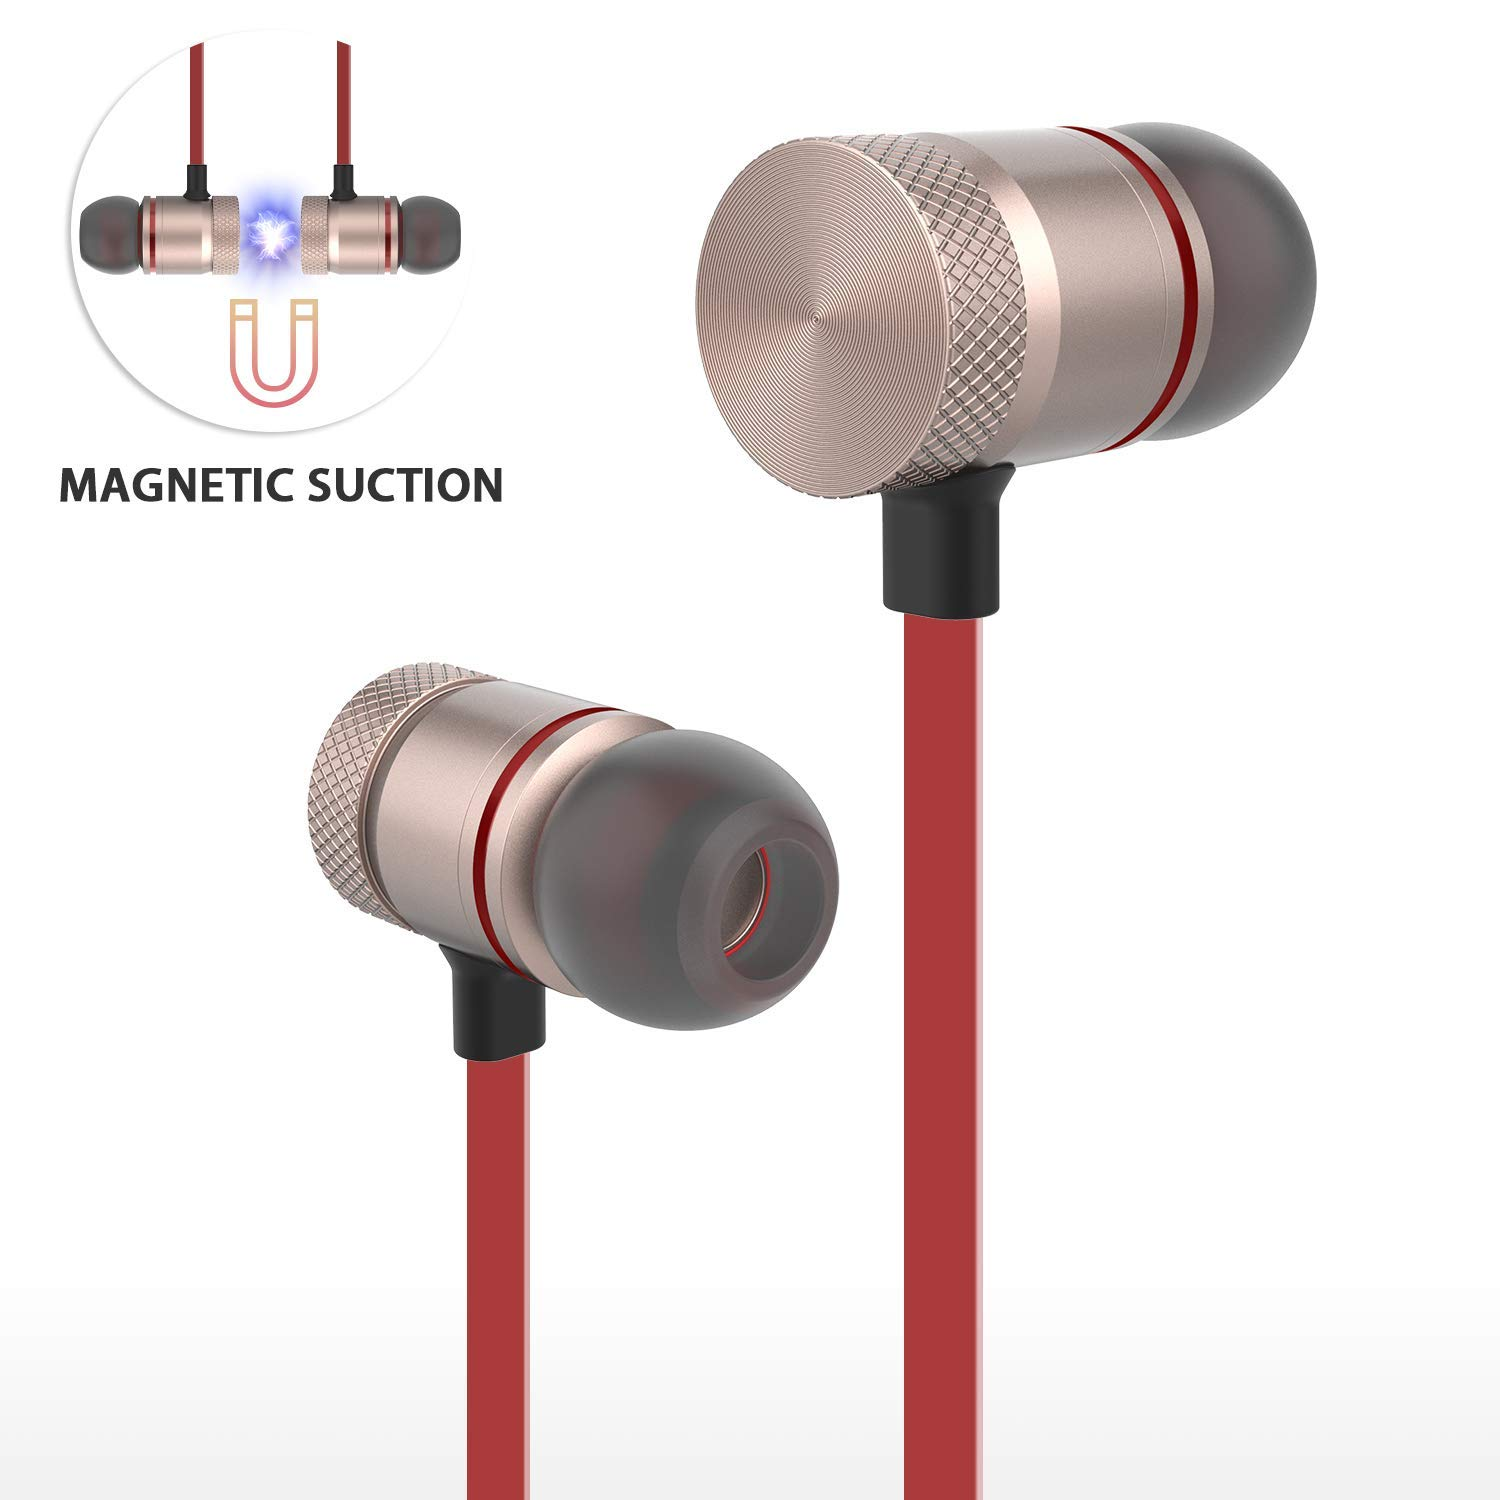 9dd4127d5fd Get Quotations · Bluetooth Headphones,AFONE Wireless Headphones Magnetic  Bluetooth Earbuds,Snug Fit for Running with Mic